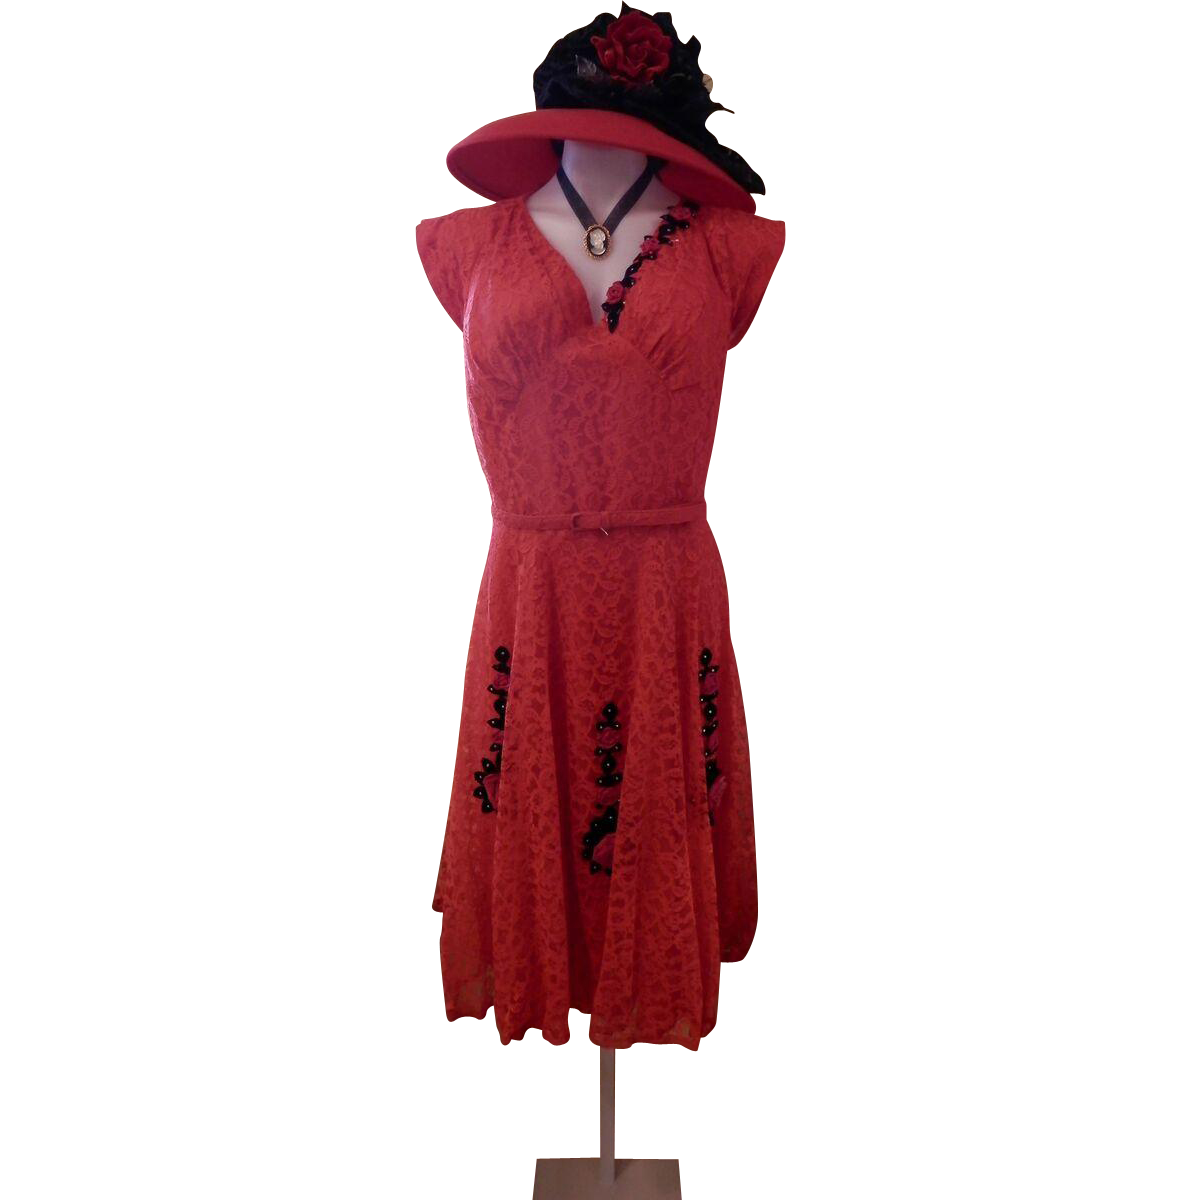 Vintage Handmade Red Lace Dress